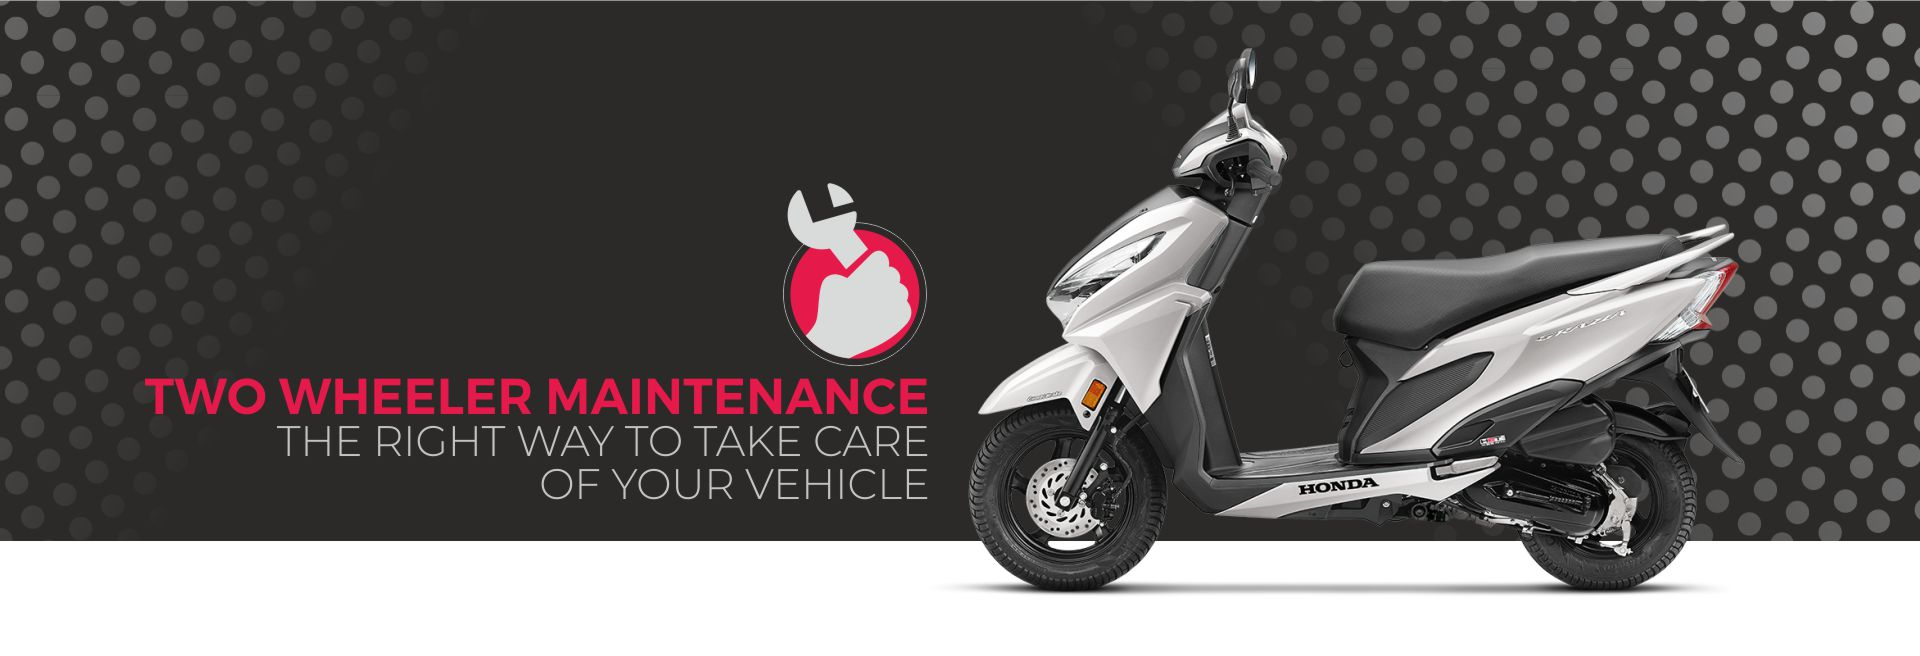 Honda Two Wheeler Maintenance